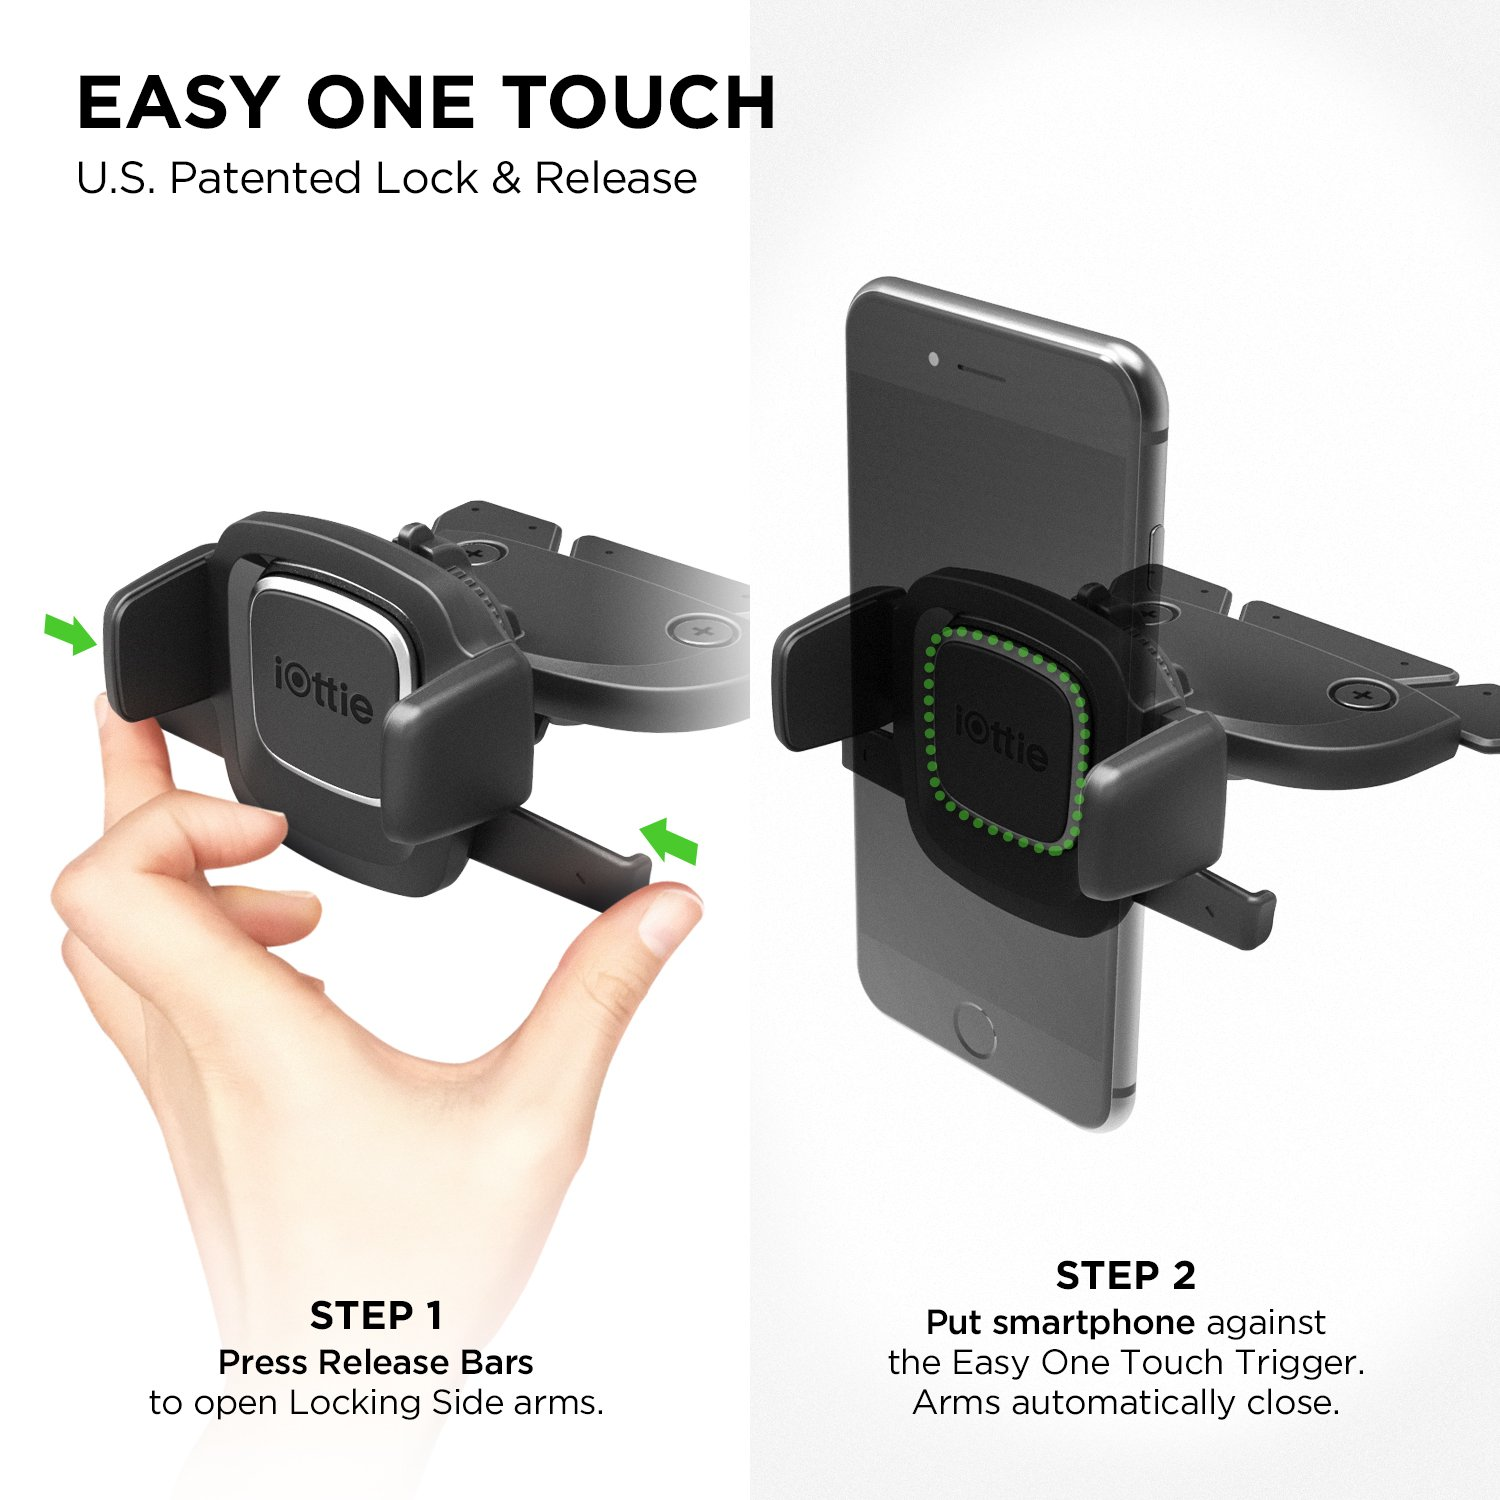 iOttie Easy One Touch 4 CD Slot Car Mount Phone Holder for iPhone X 8 Plus 7 Samsung Galaxy S9 S8 Edge S7 Note 8 & Other Smartphone by iOttie (Image #2)